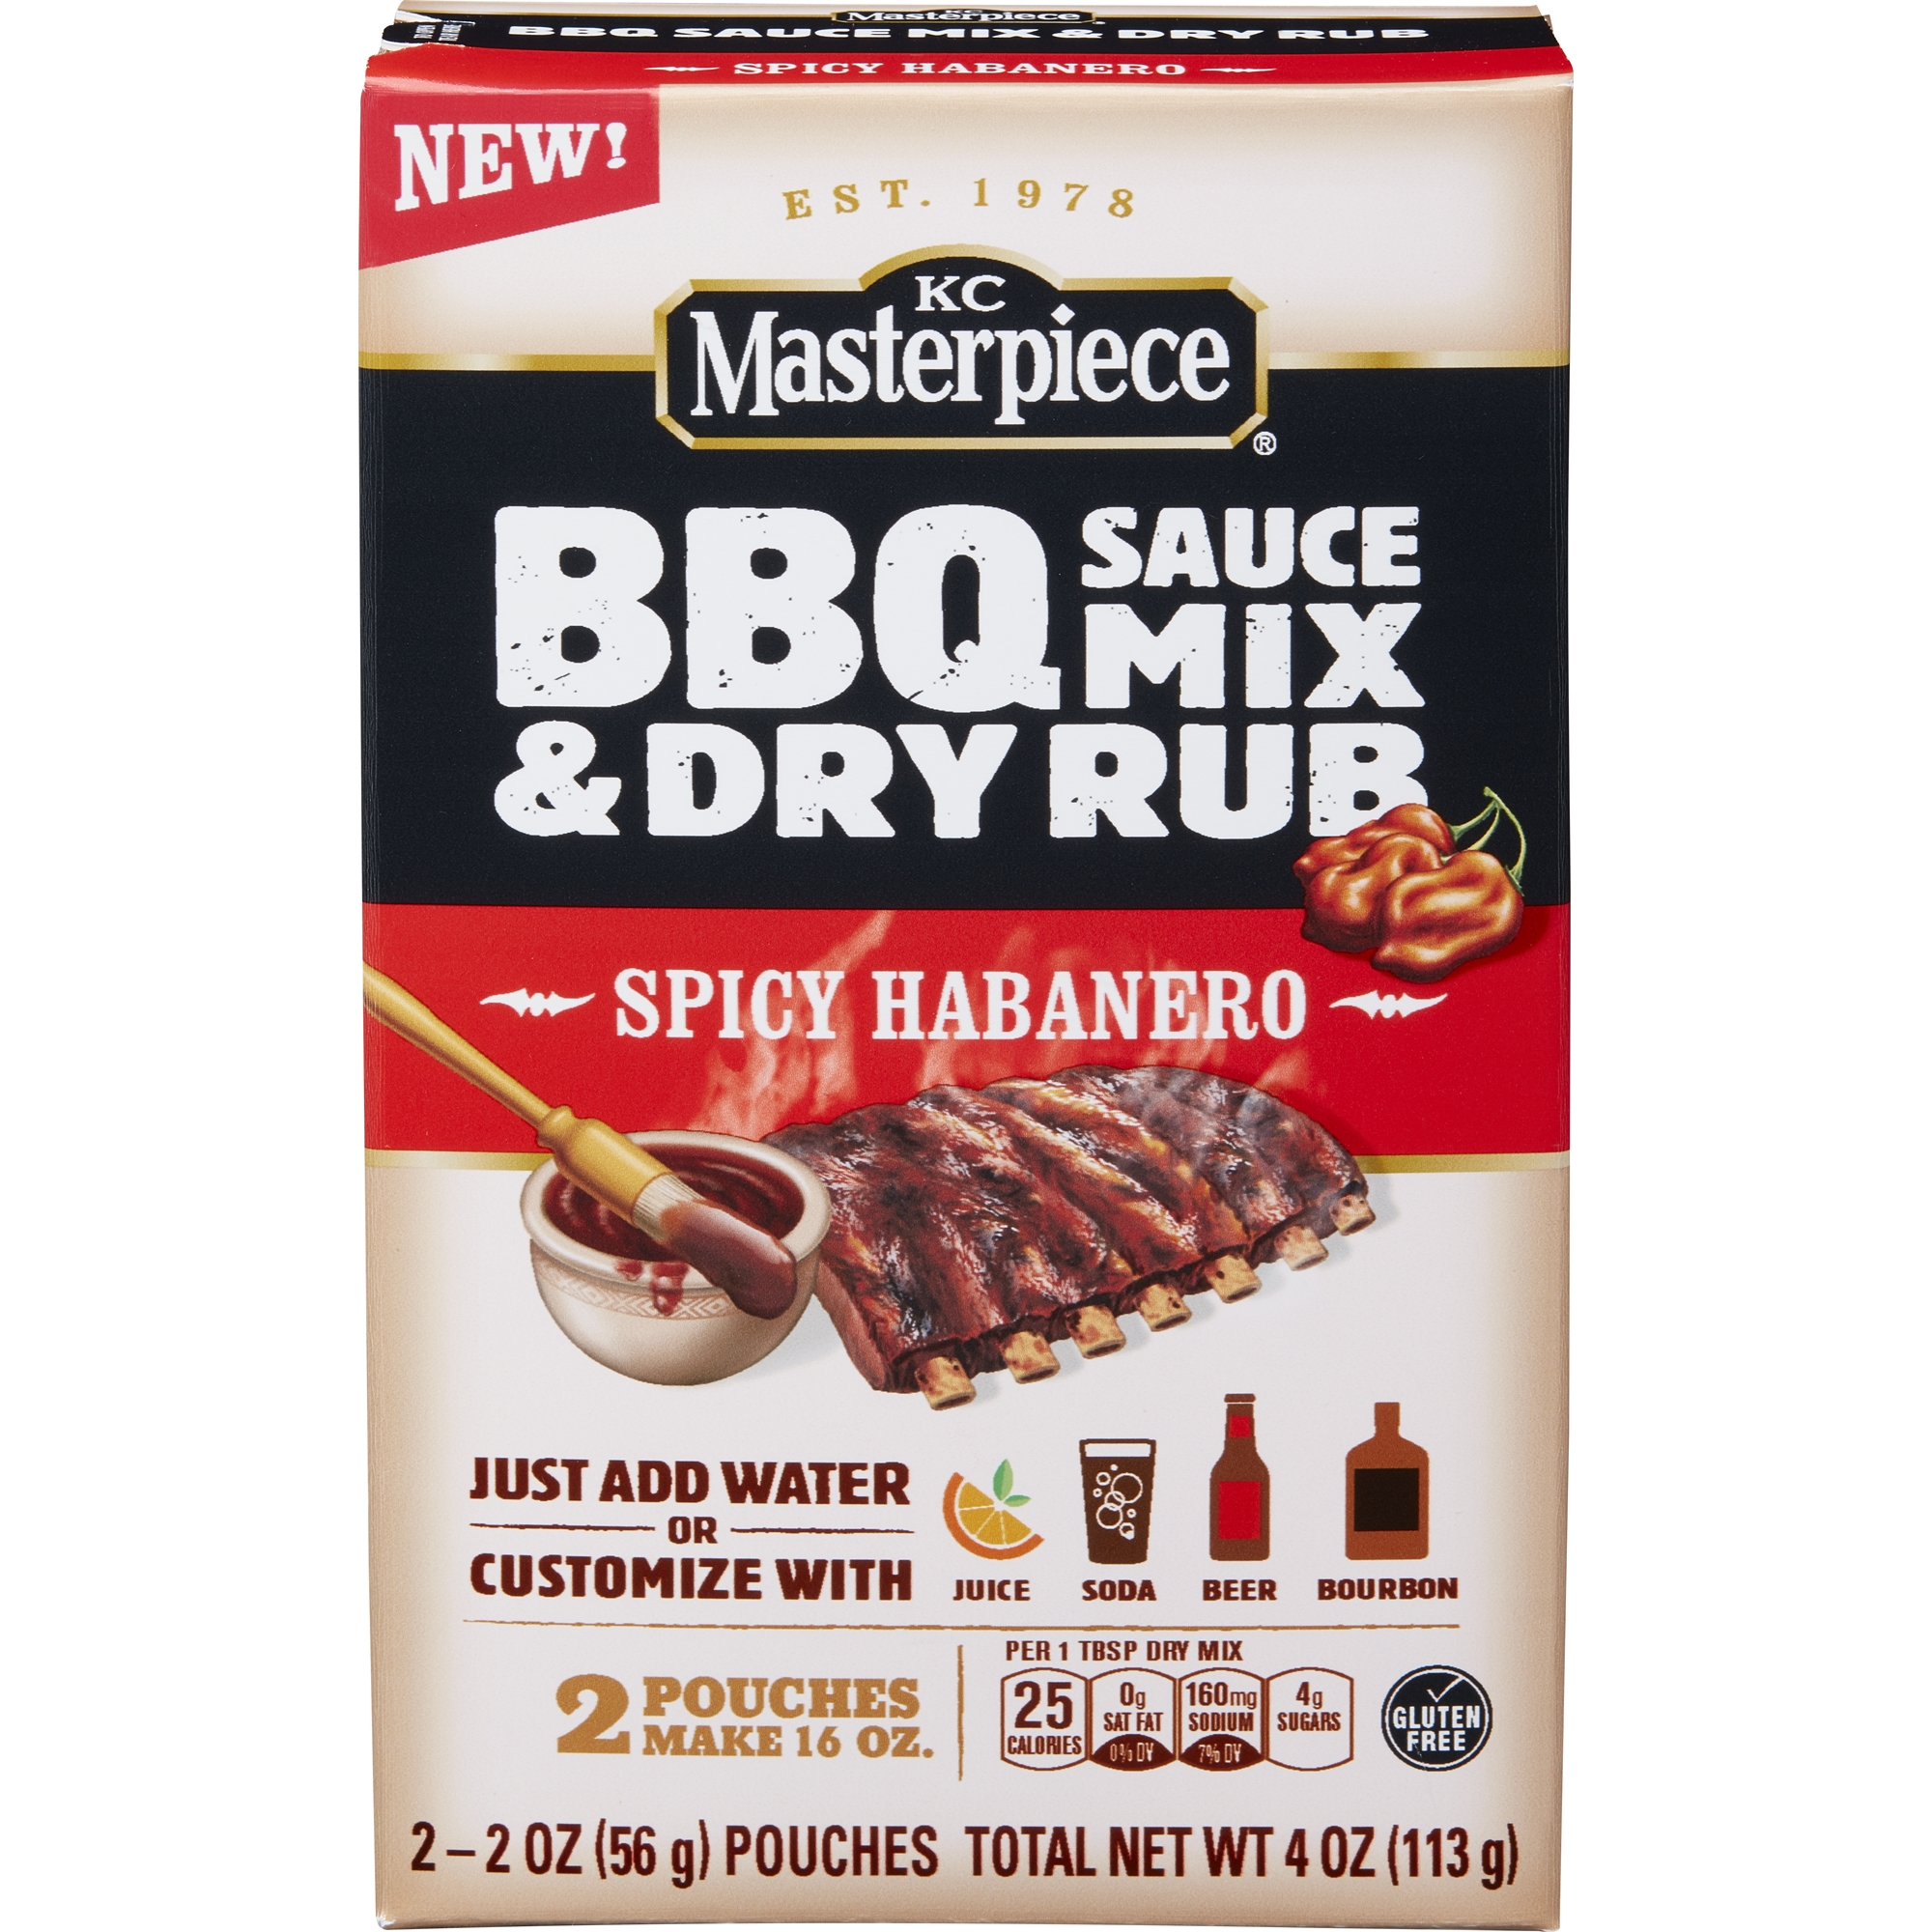 KC Masterpiece BBQ Sauce Mix & Dry Rub, Spicy Habanero, 4 oz